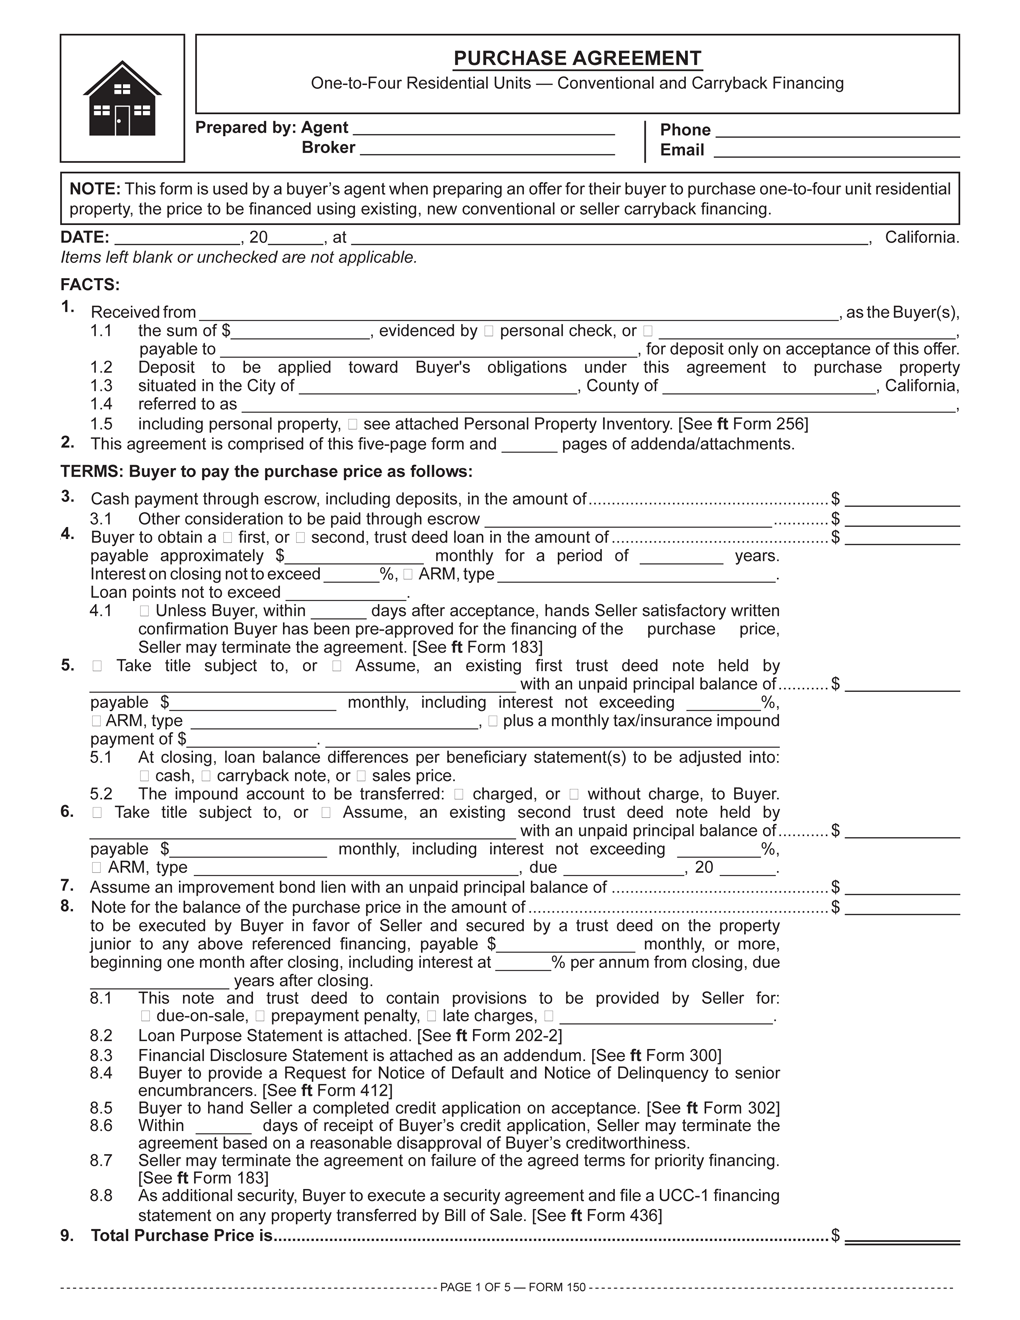 First Tuesday Journal  Property Purchase Agreement Template